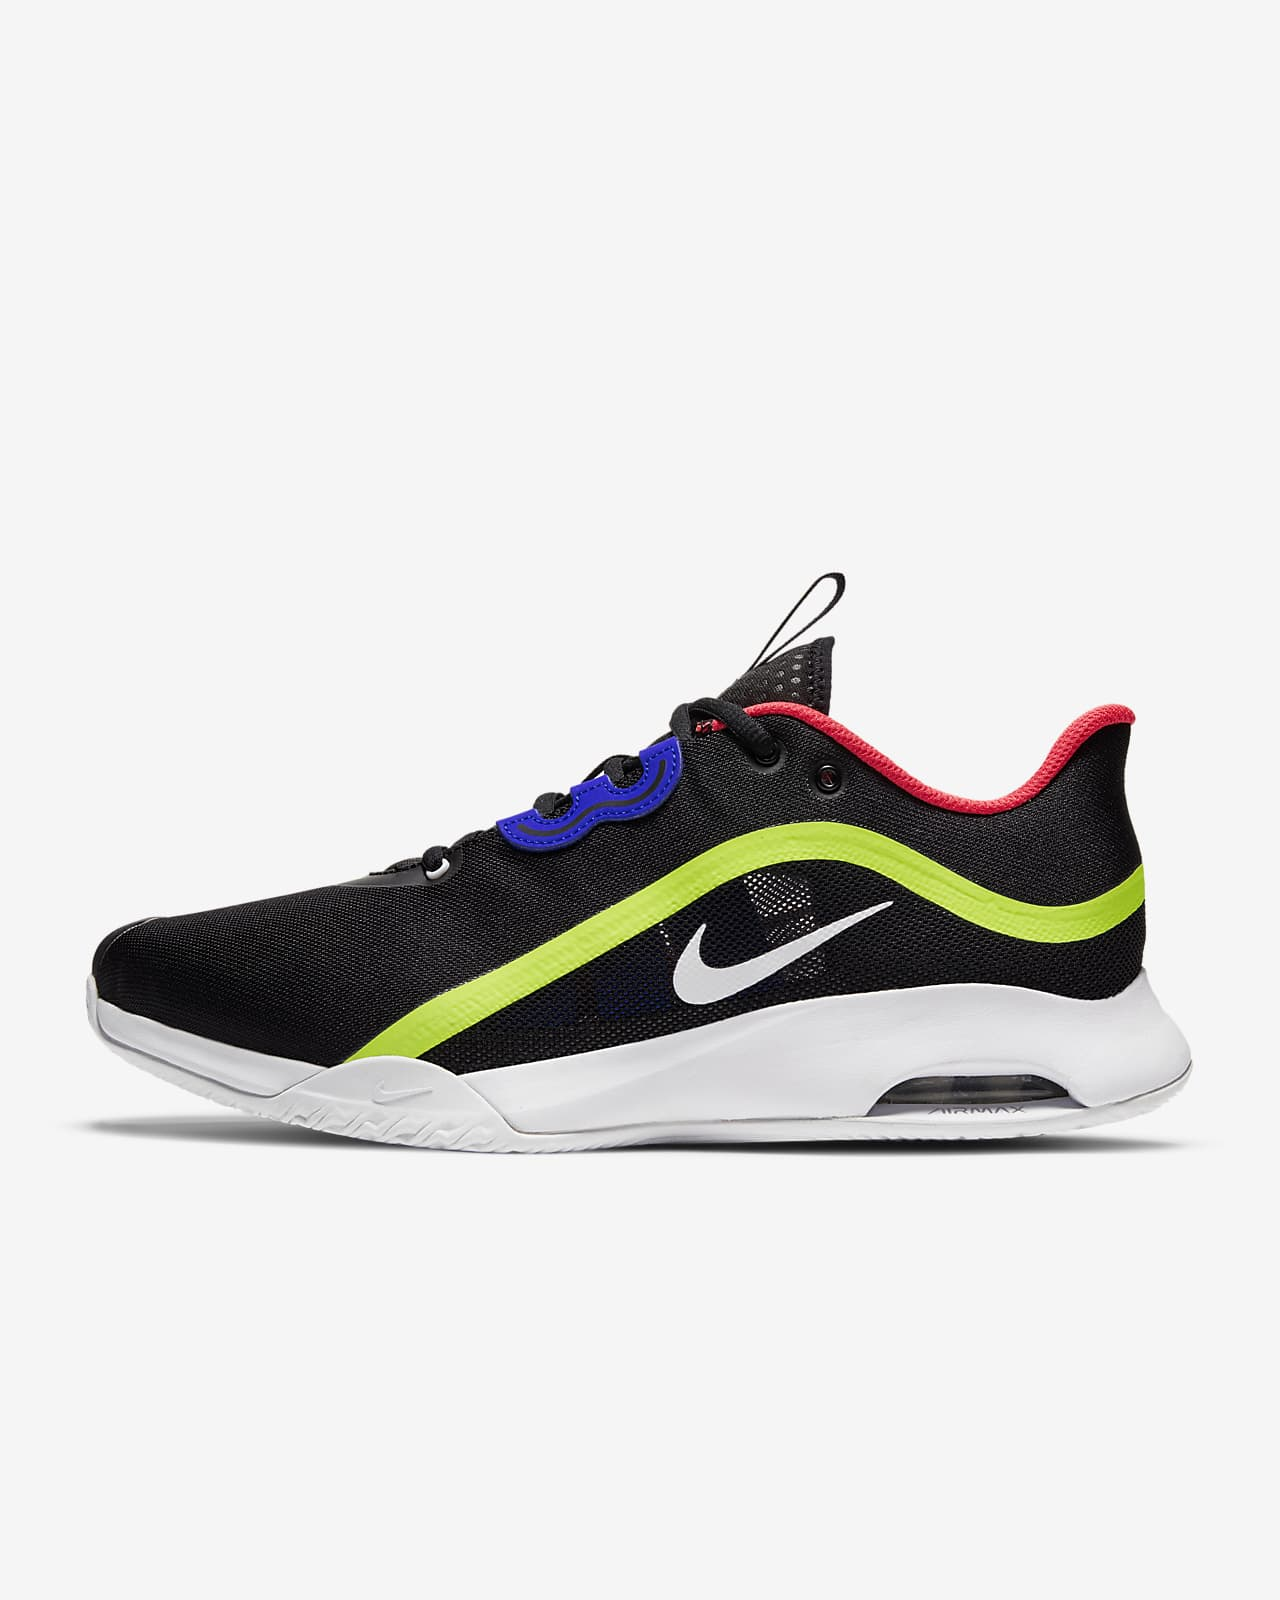 Męskie buty do tenisa na twarde korty NikeCourt Air Max Volley